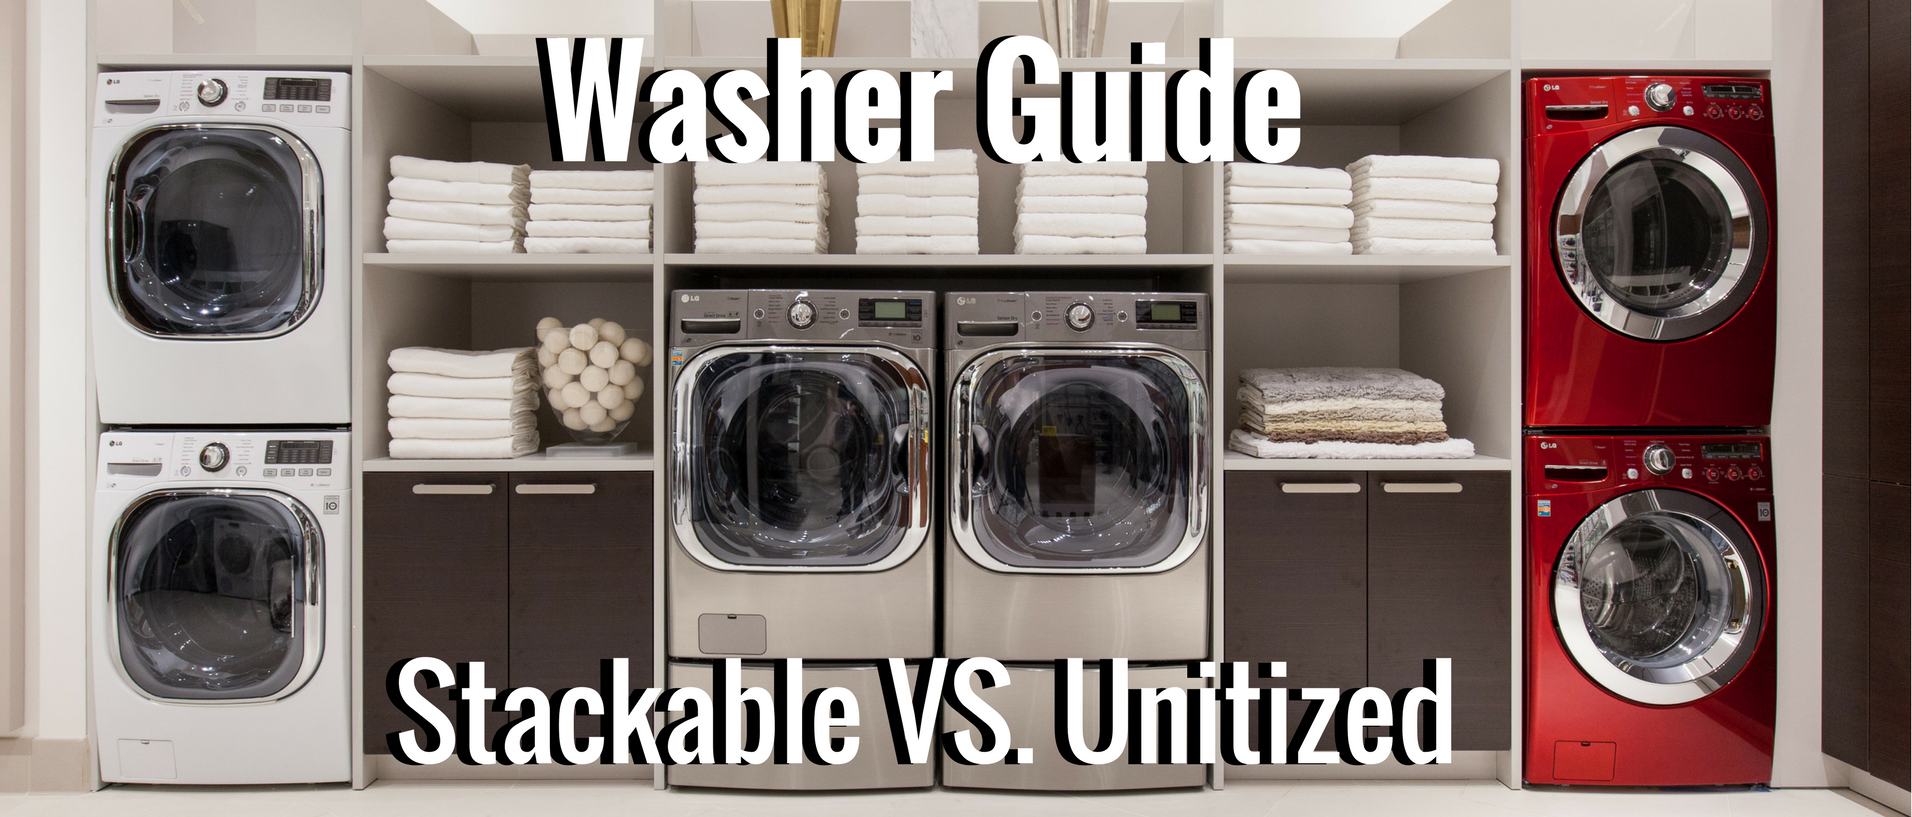 Washer Guide Stackable Vs Side By Appliances Connection Together With Samsung Electric Clothes Dryer Additionally Maytag For Centuries People Have Been Wasting Water Gas Energy And Time Just To Do Their Laundry Imagine Having Rub Your Consistently A Certain